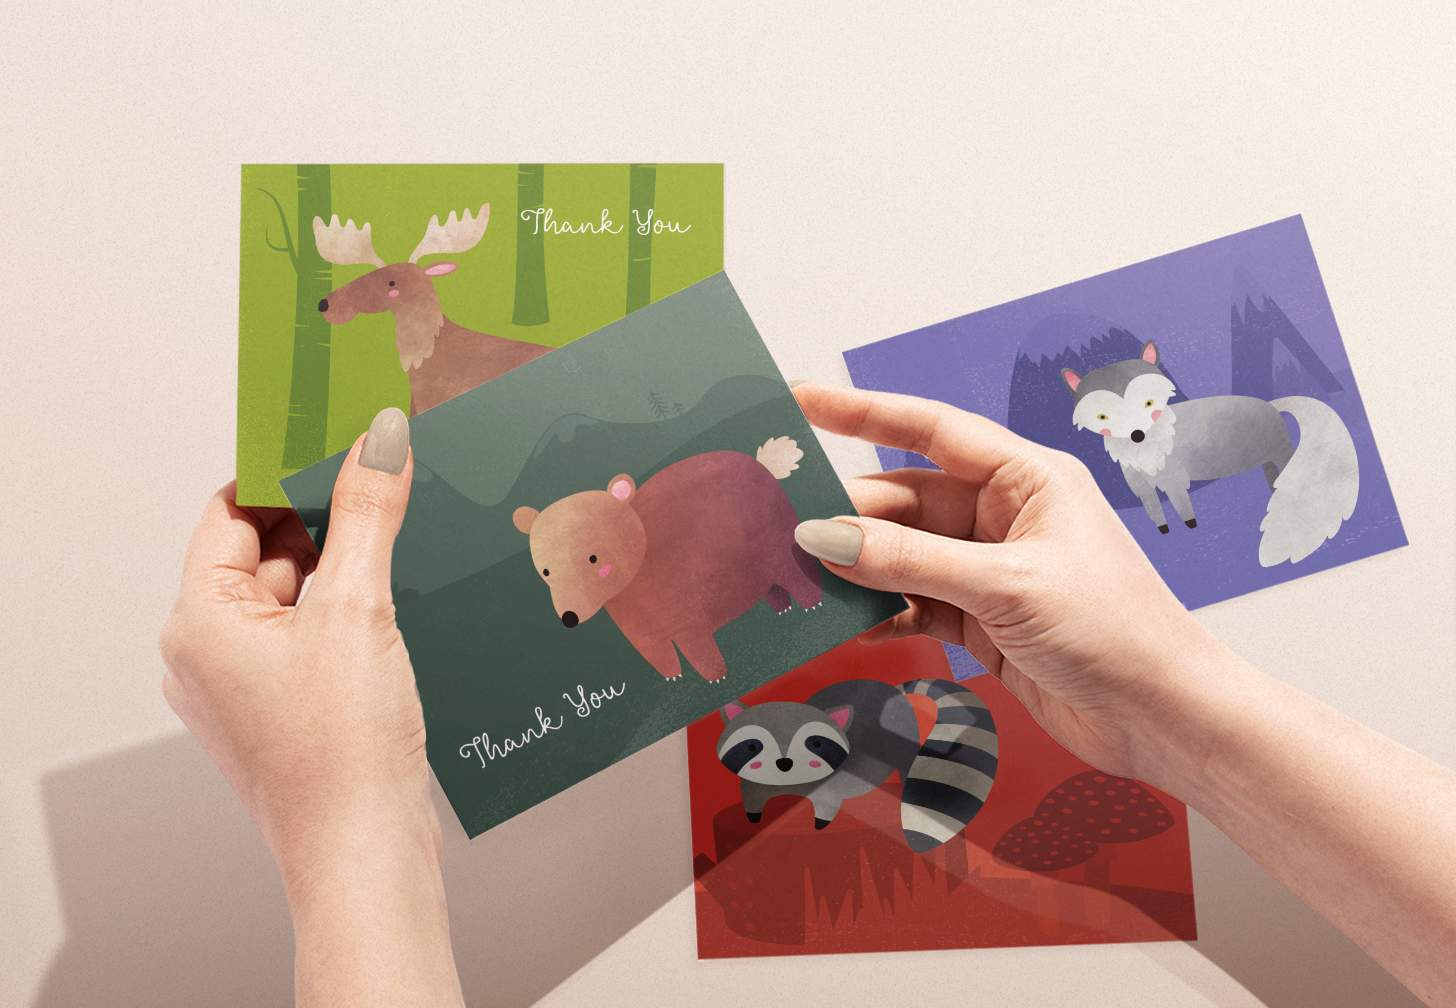 Woman's hands holding card with cute brown bear design with moose, raccoon, and wolf designs in background